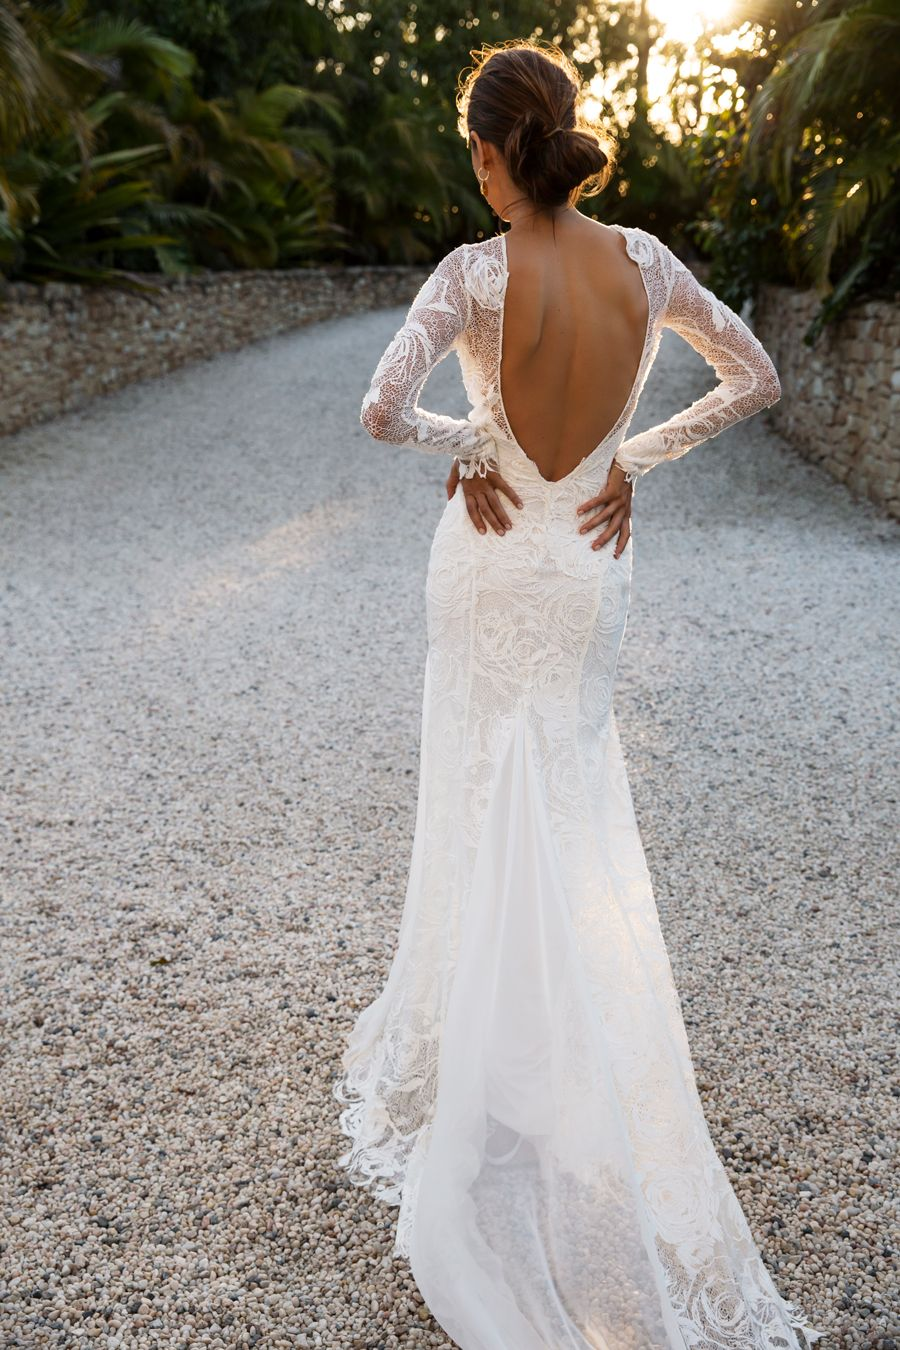 2019 year for women- Wedding Lace dress pinterest pictures